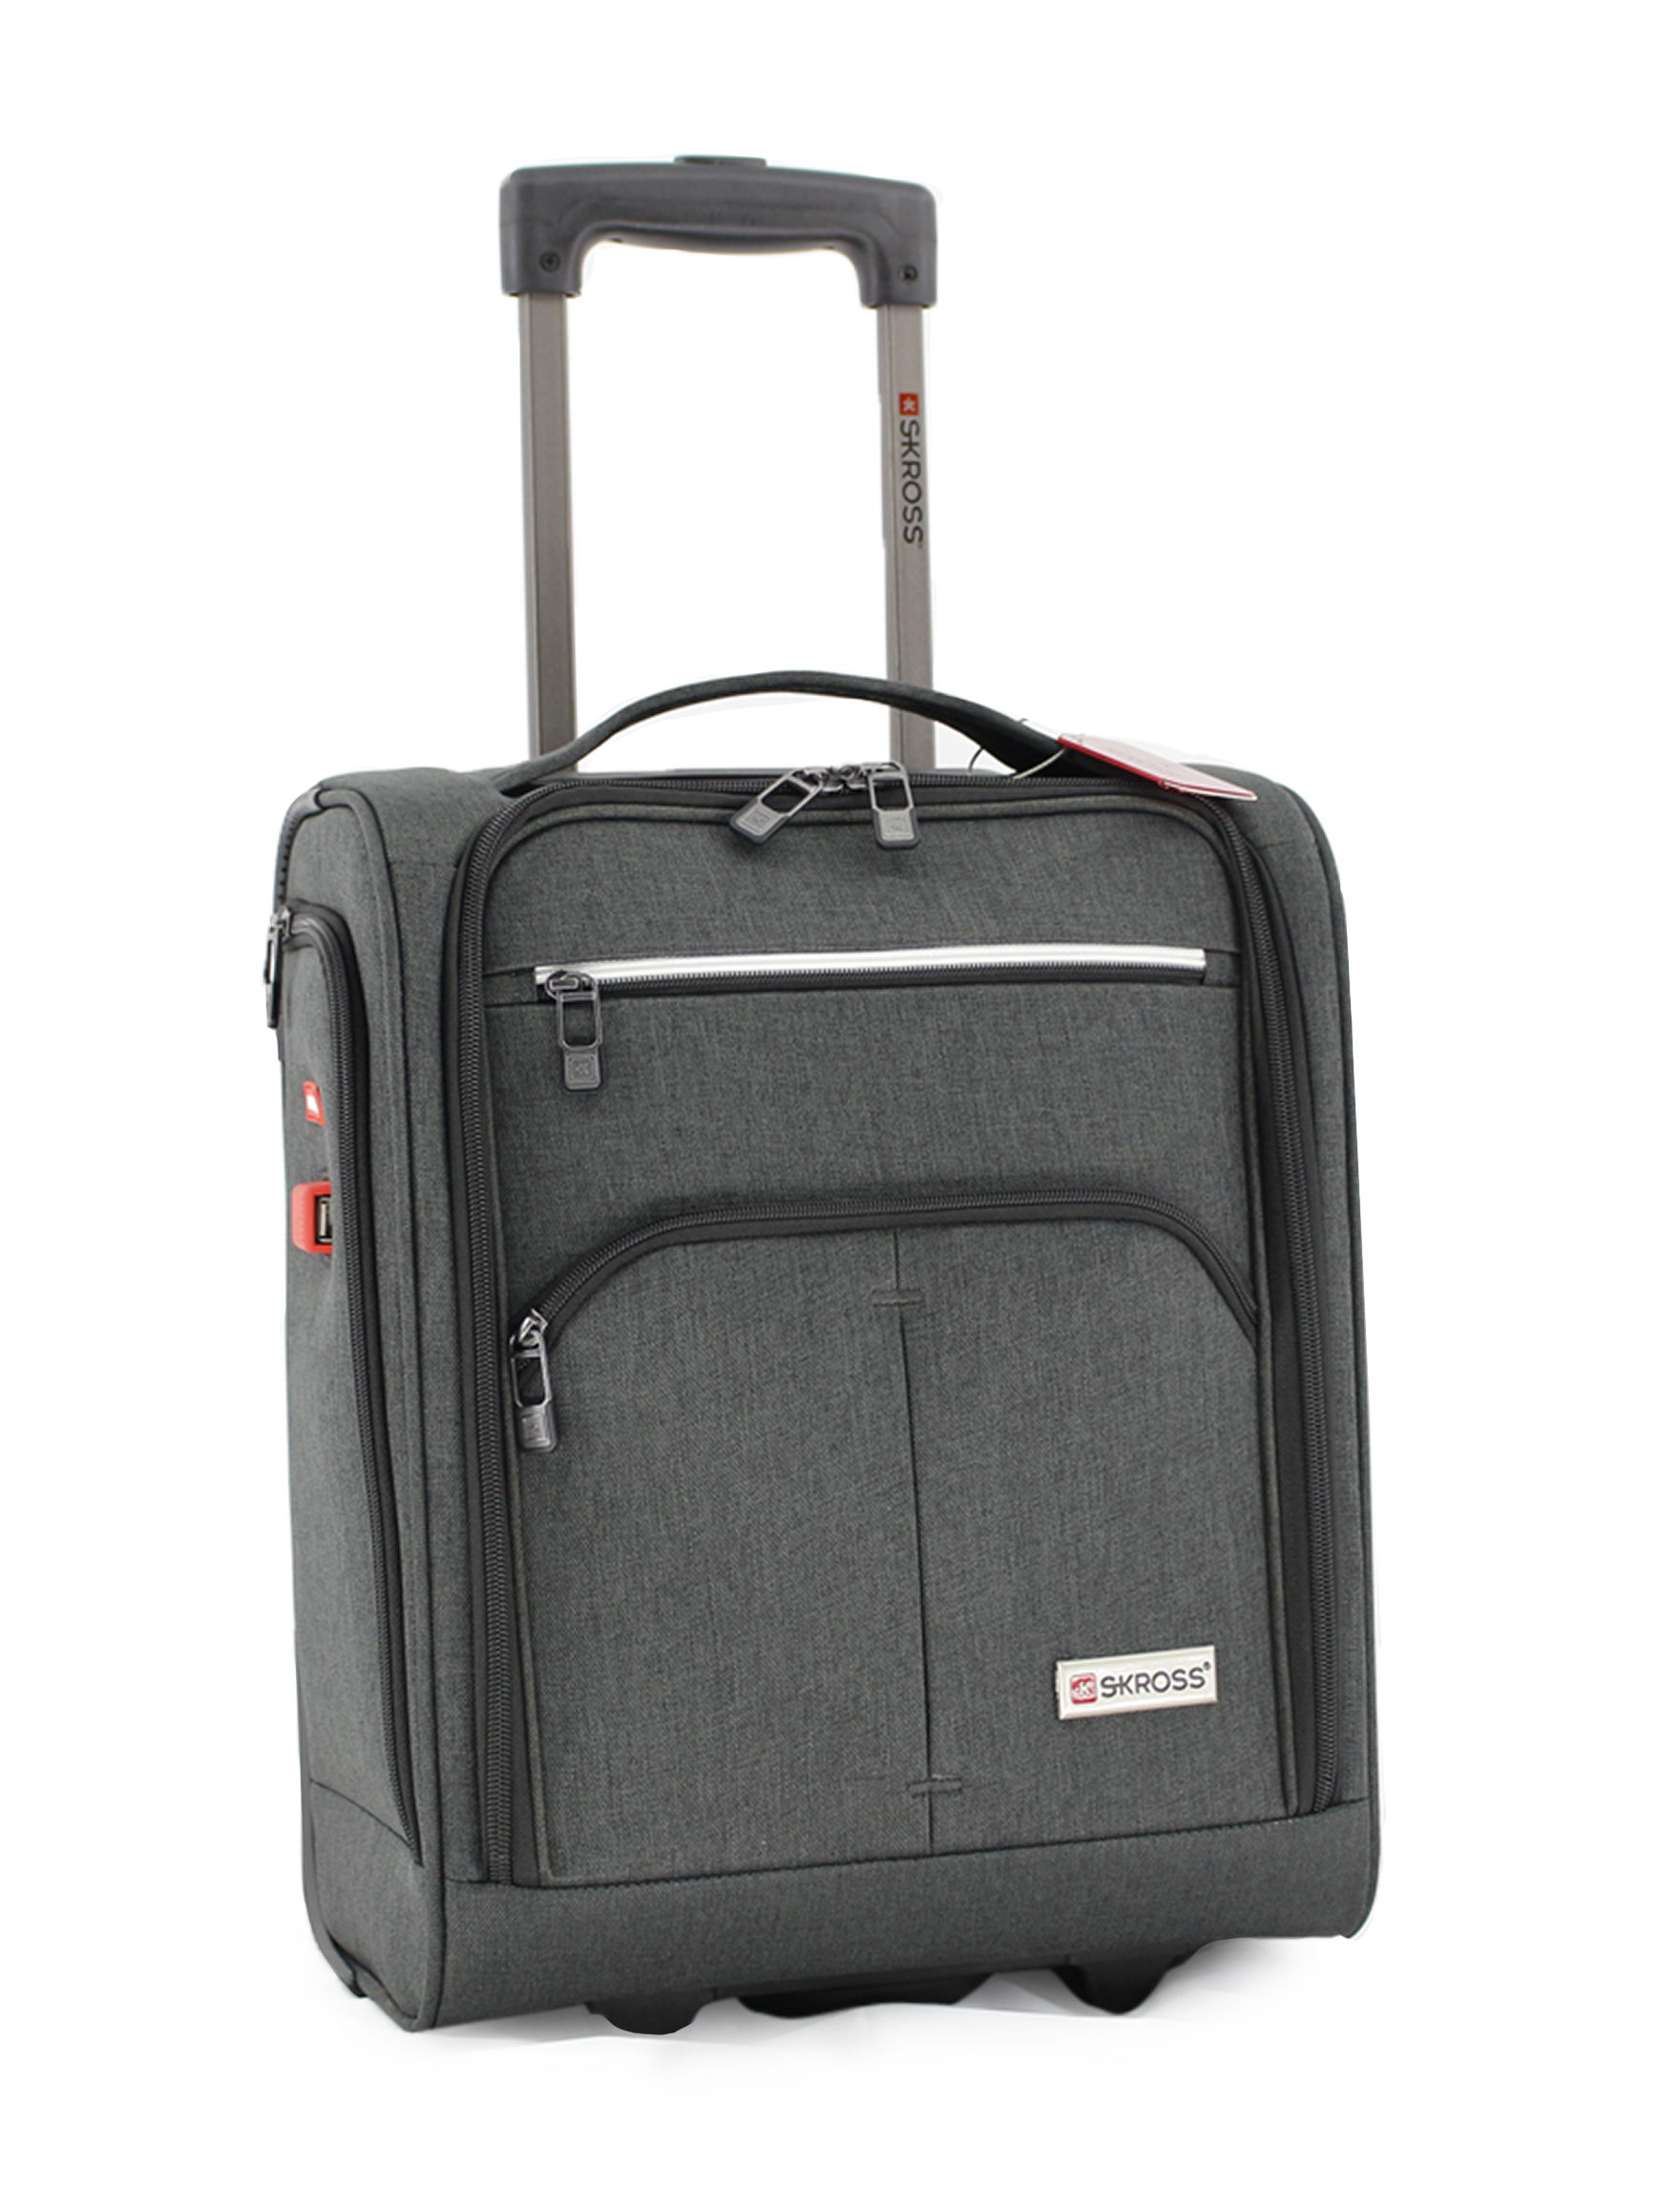 S-Kross Grey Softside Carry On Luggage